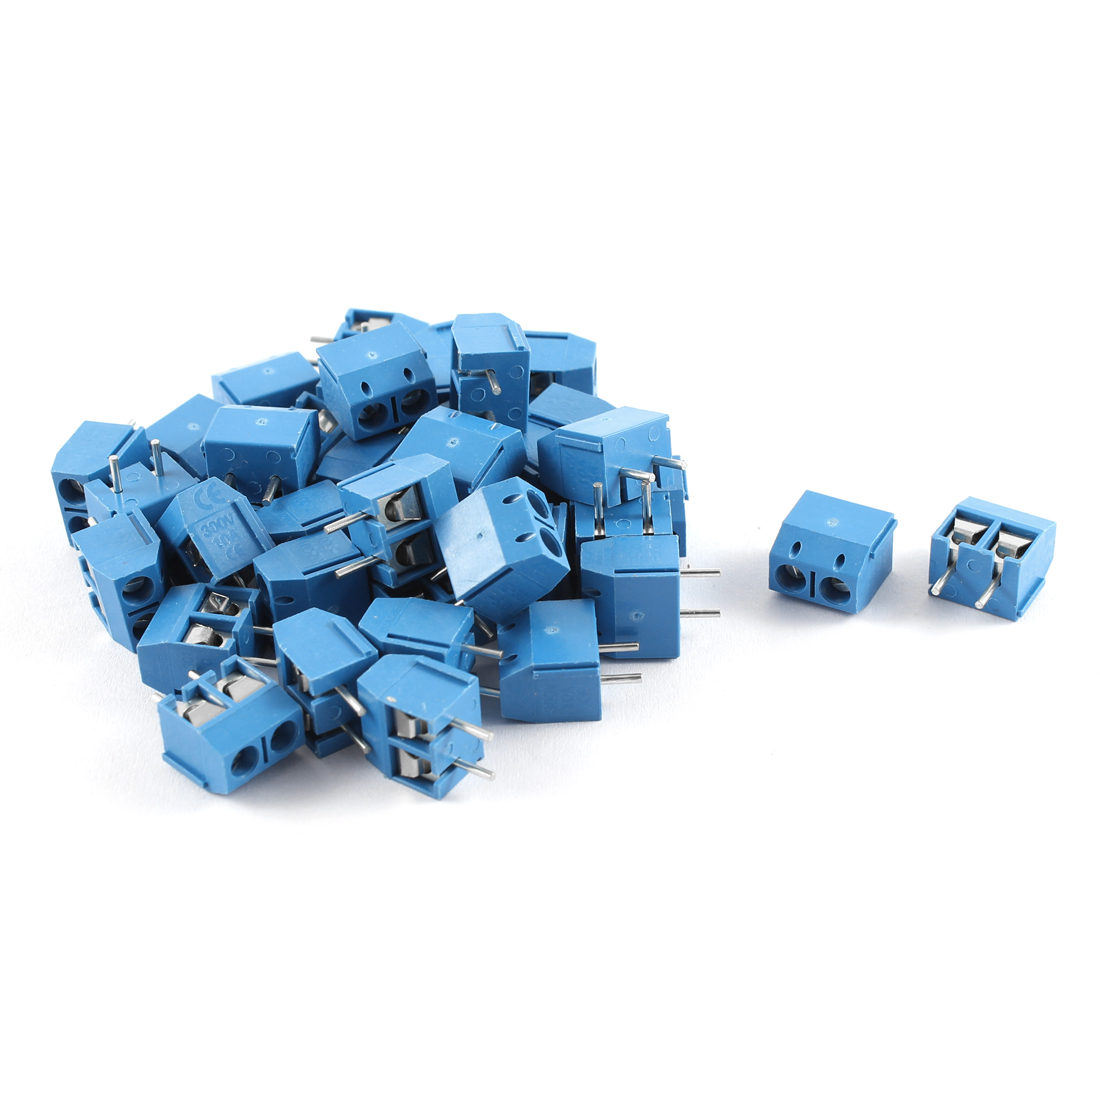 300V 10A 2P 5mm Pitch PCB Mounted Screw Terminal Block Straight Connector 40pcs Blue